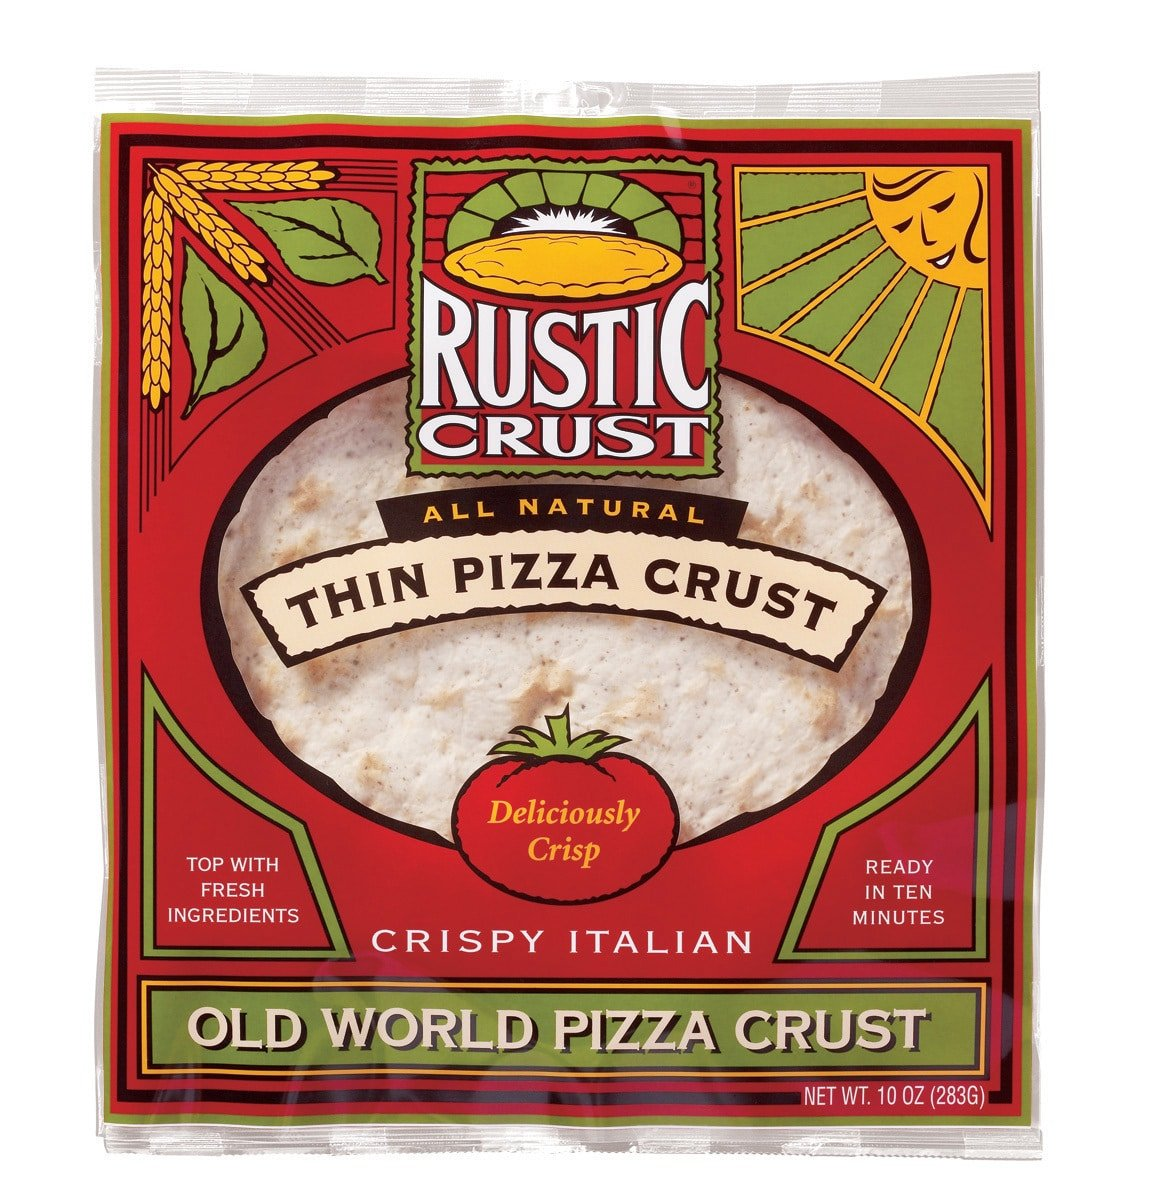 Save 55¢ off when you buy any 1 Rustic Crust Product